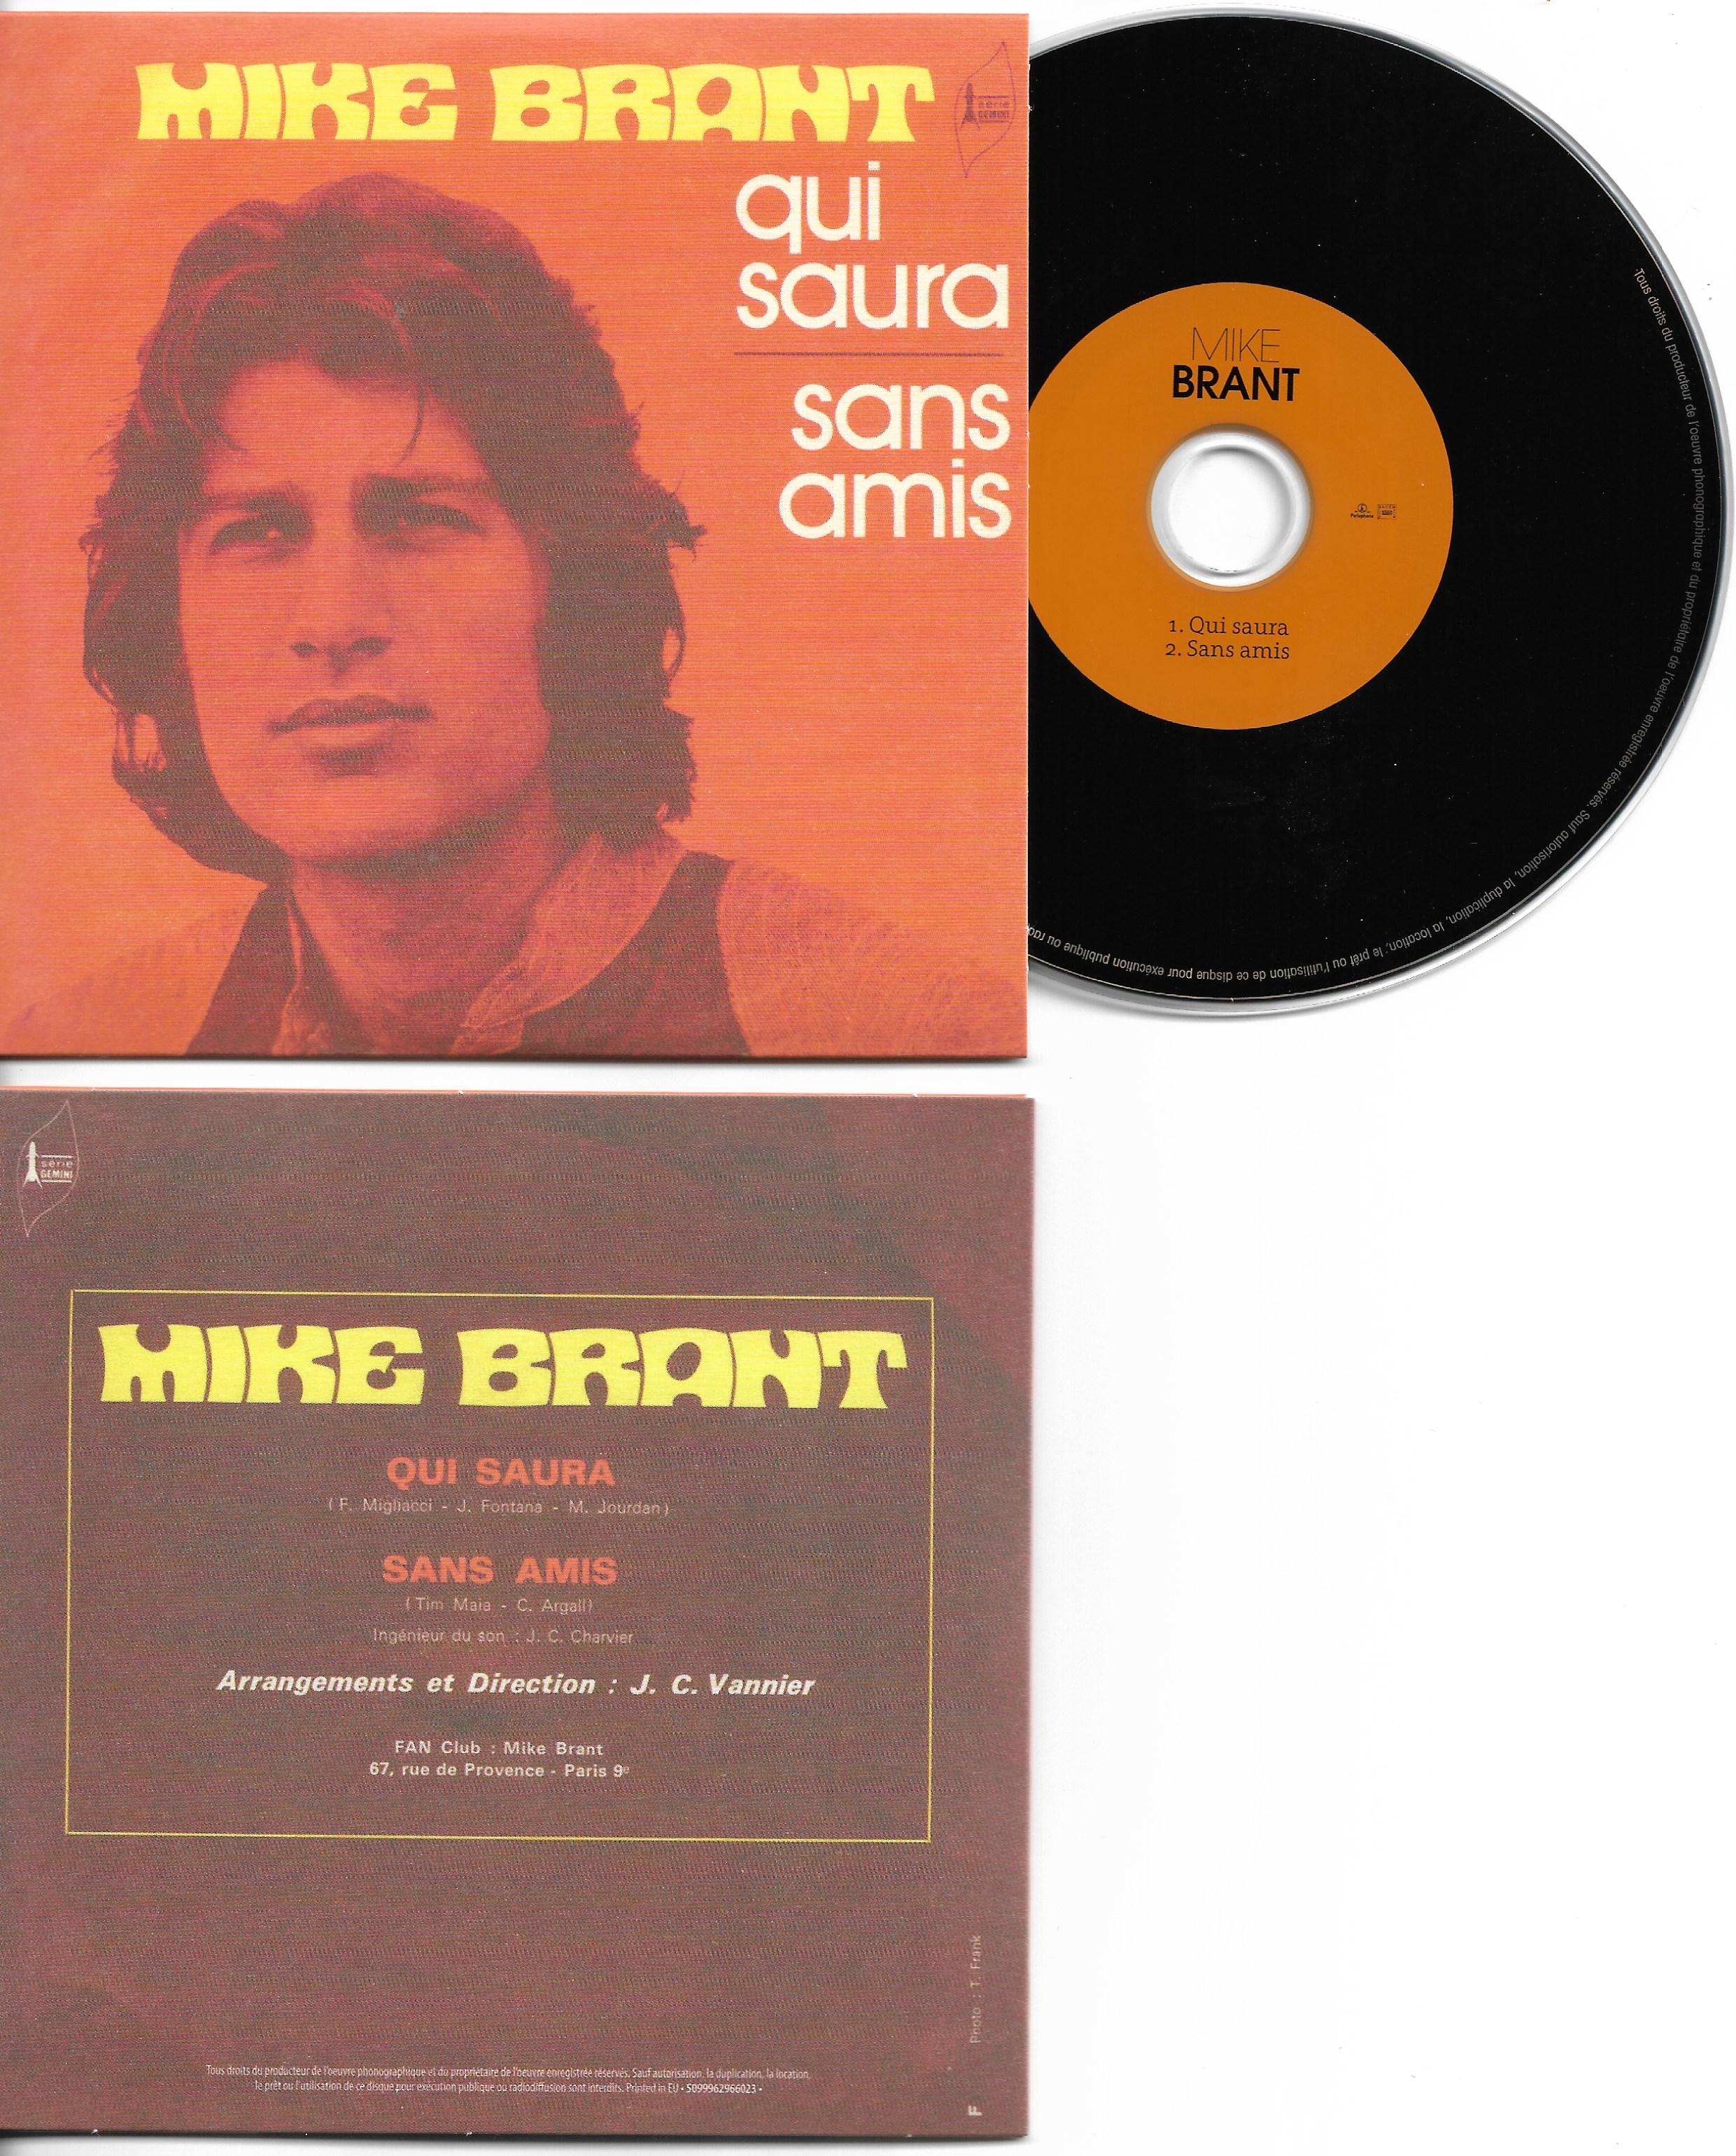 MIKE BRANT - Qui saura 2-TRACK CARD SLEEVE - CD single